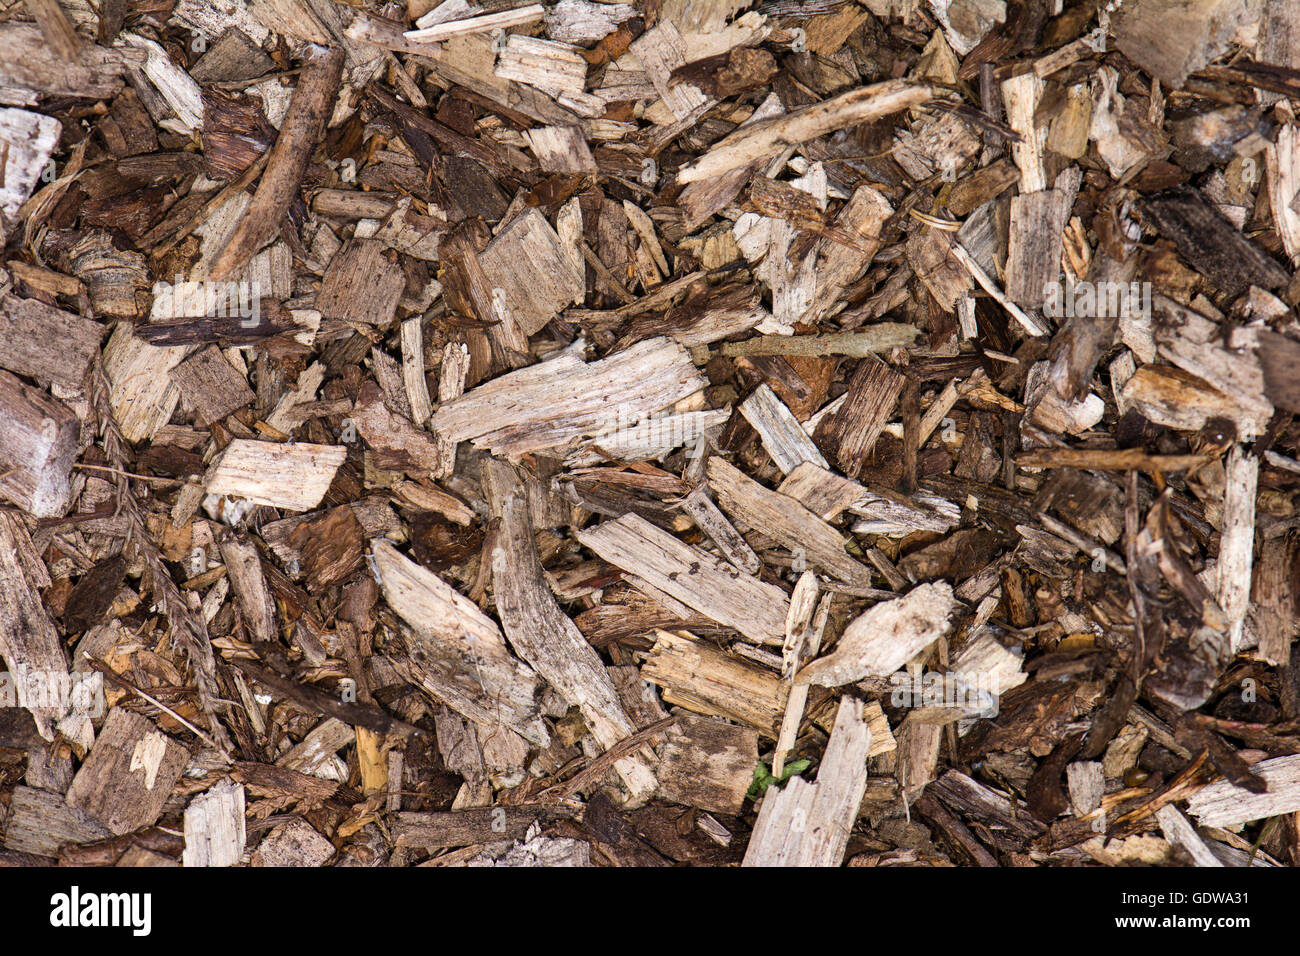 garden bark. Garden Mulch Made Up Of Mulched Wood And Bark Used To Suppress Weed Growth